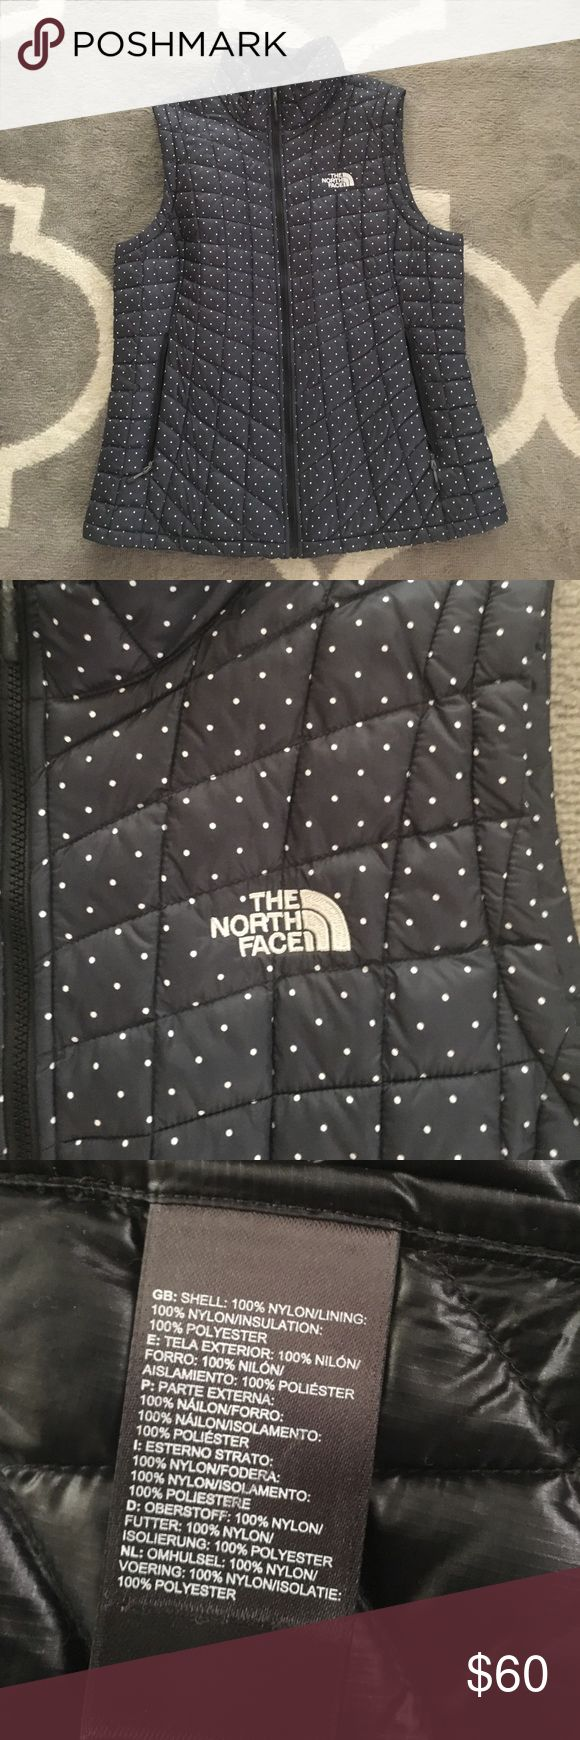 North face lightweight puffy vest The north face lightweight puffy vest navy.  Worn once. North Face Jackets & Coats Puffers